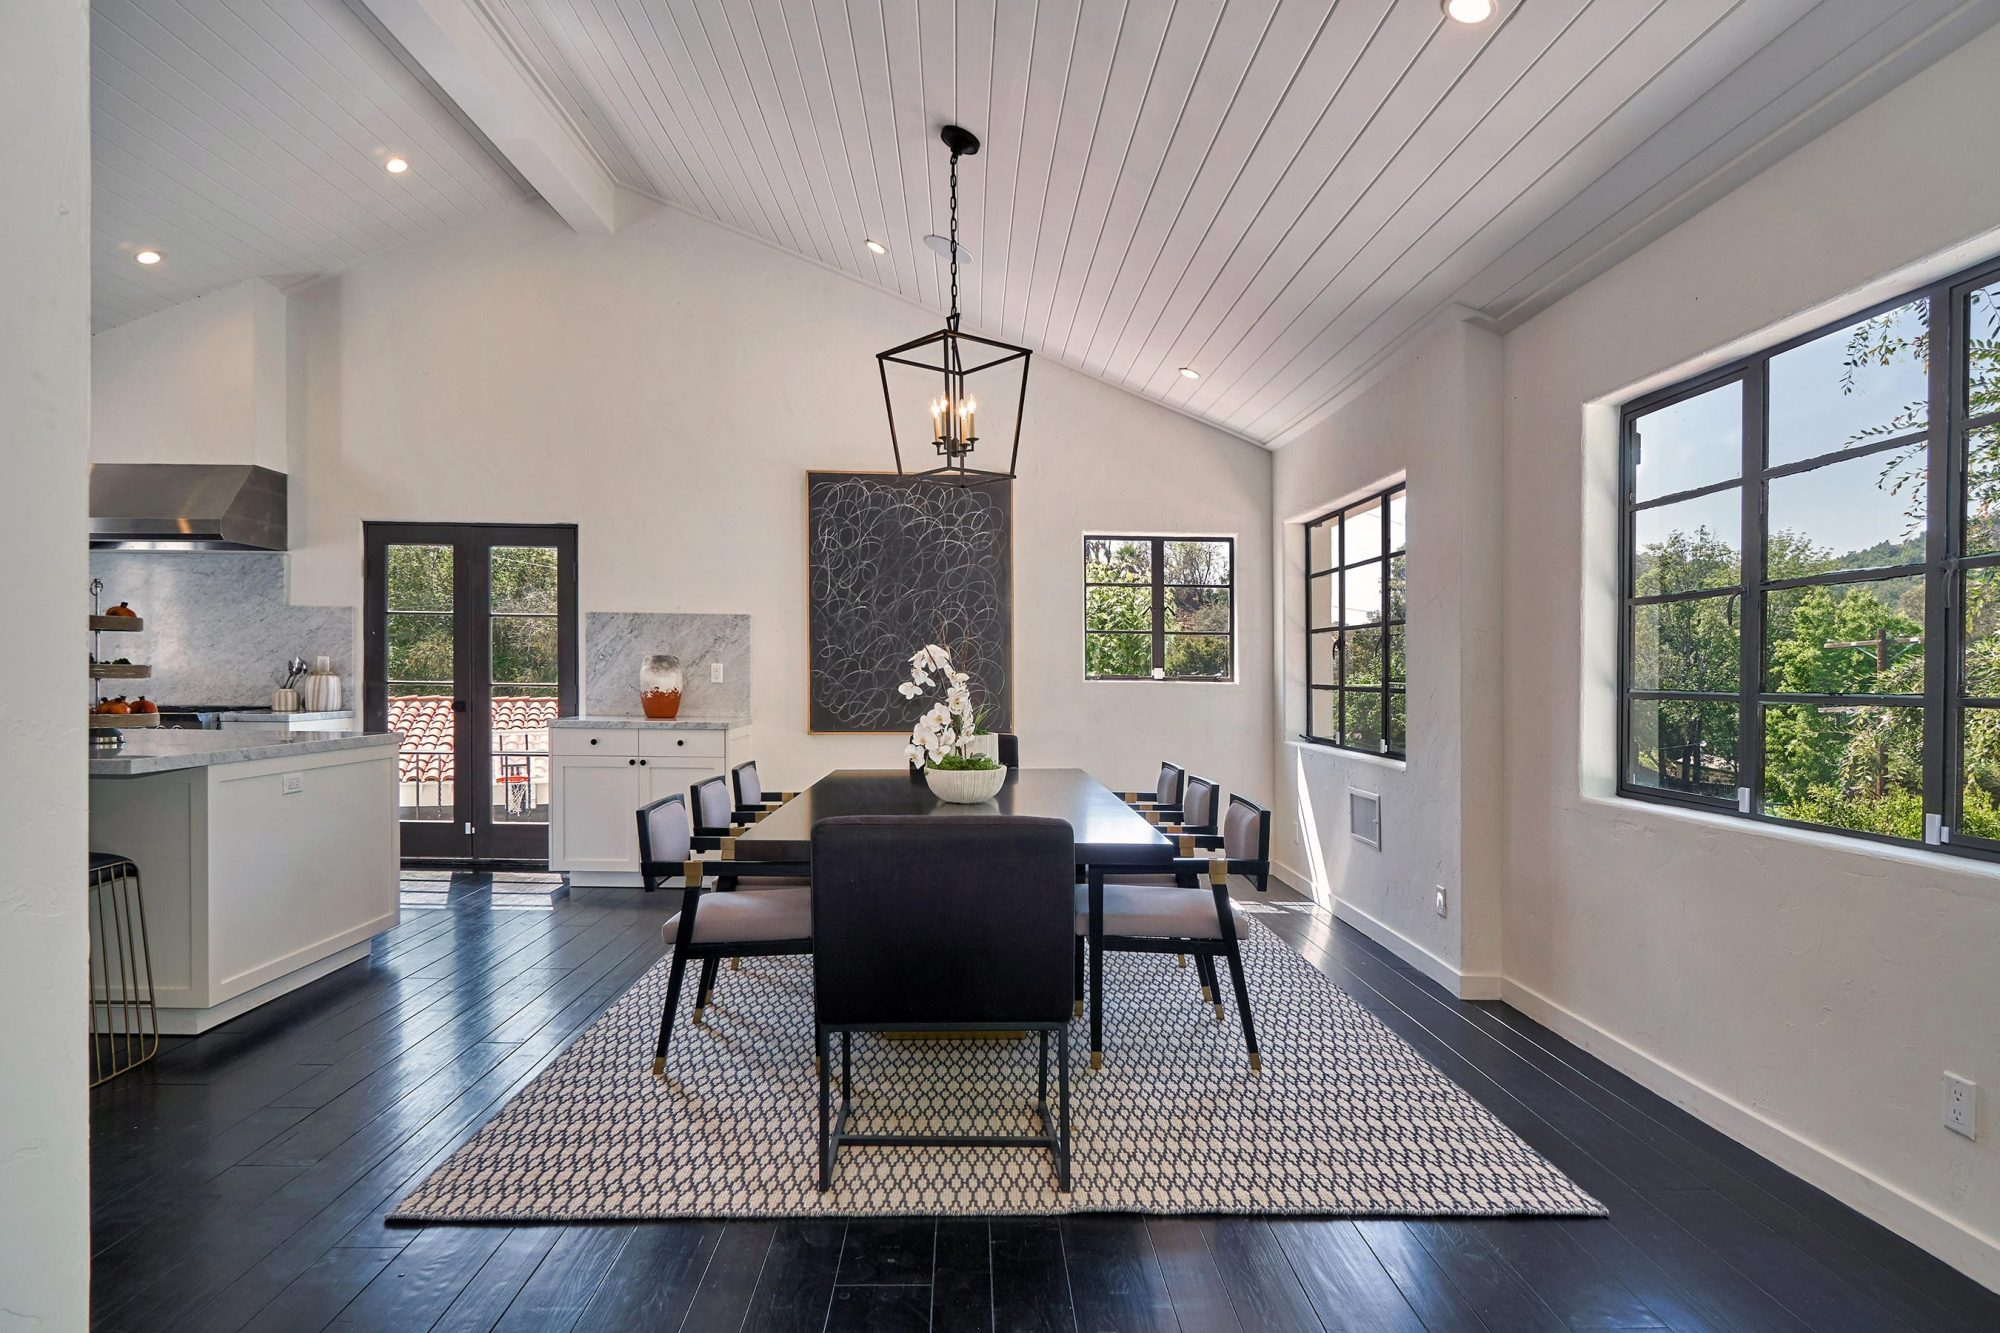 James Dean's Former House Is Listed for $3.9 MillionCR: The Agency